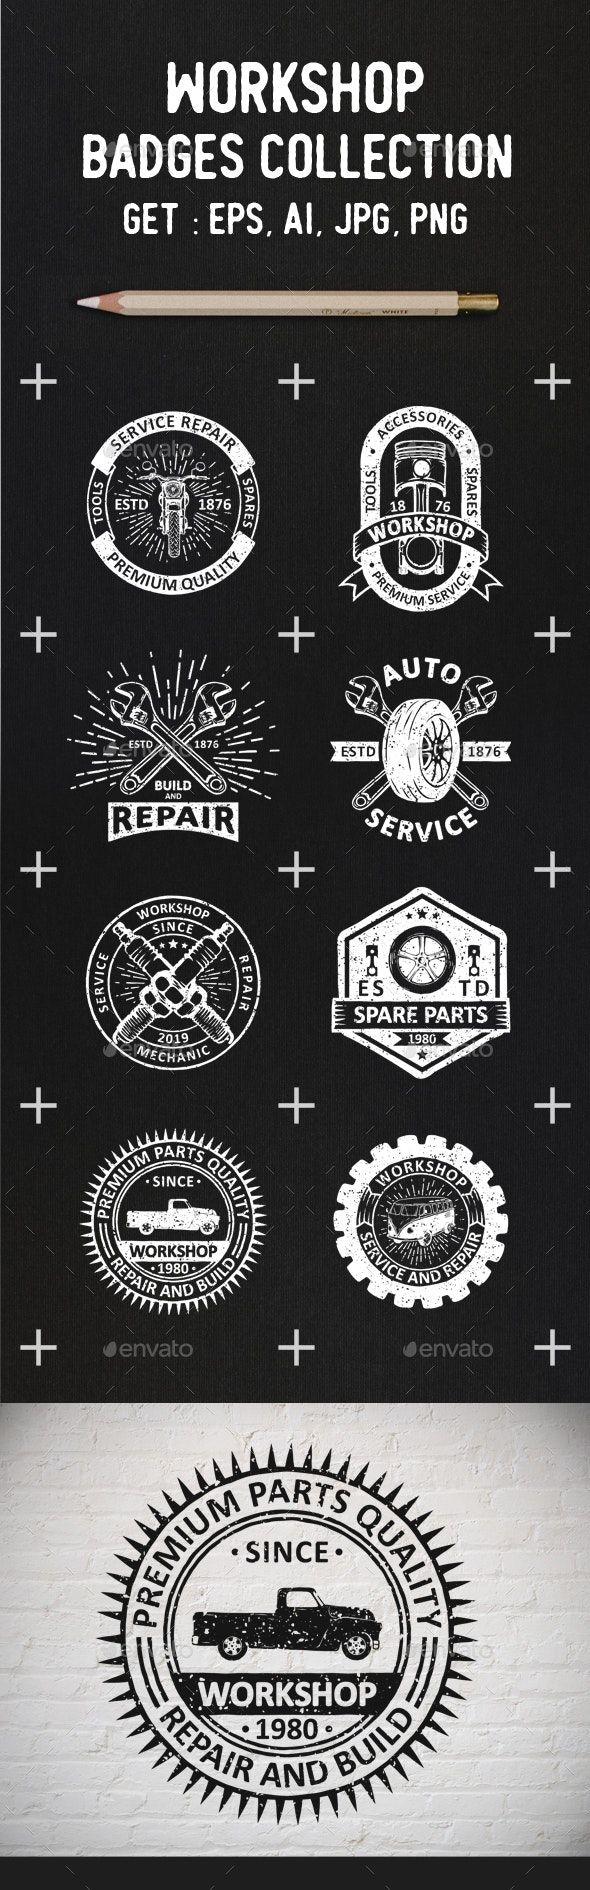 Garage Logos And Badges Template Vector Eps, Ai Download